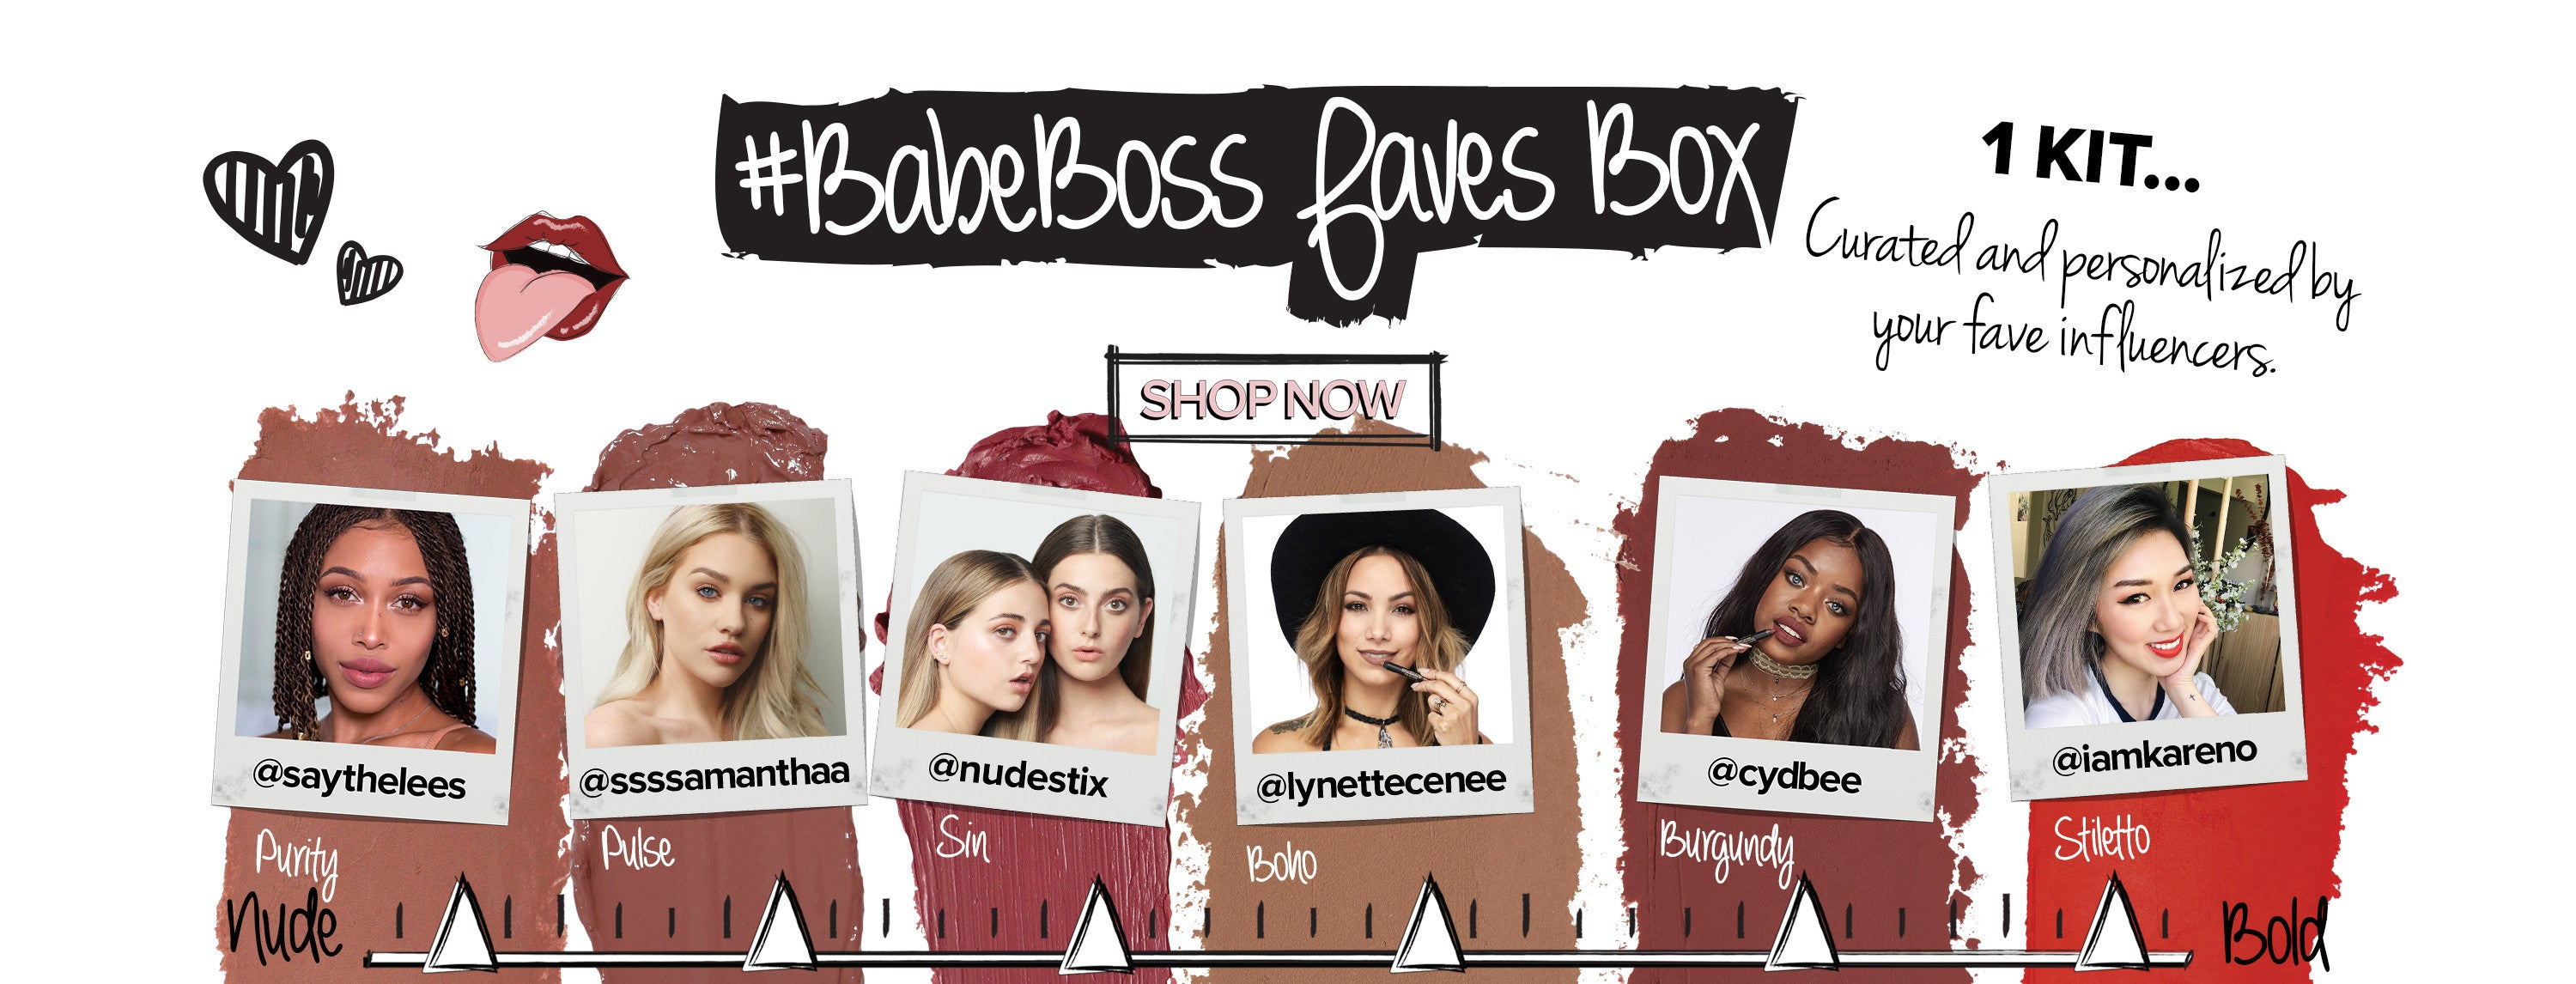 #BABEBOSS Faves Box